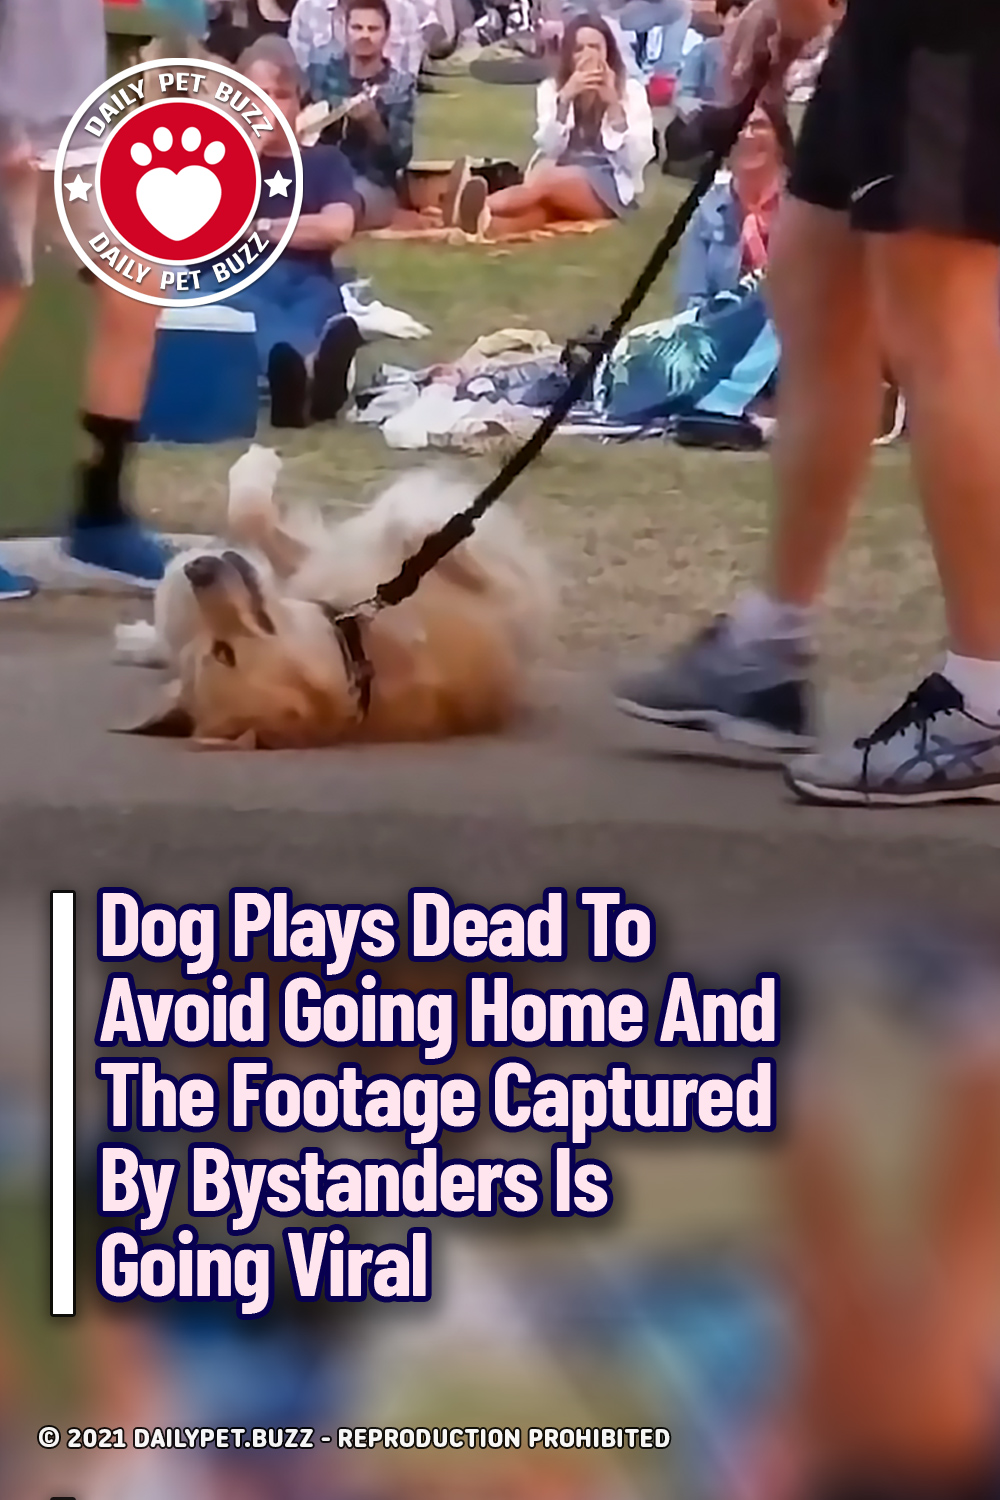 Dog Plays Dead To Avoid Going Home And The Footage Captured By Bystanders Is Going Viral